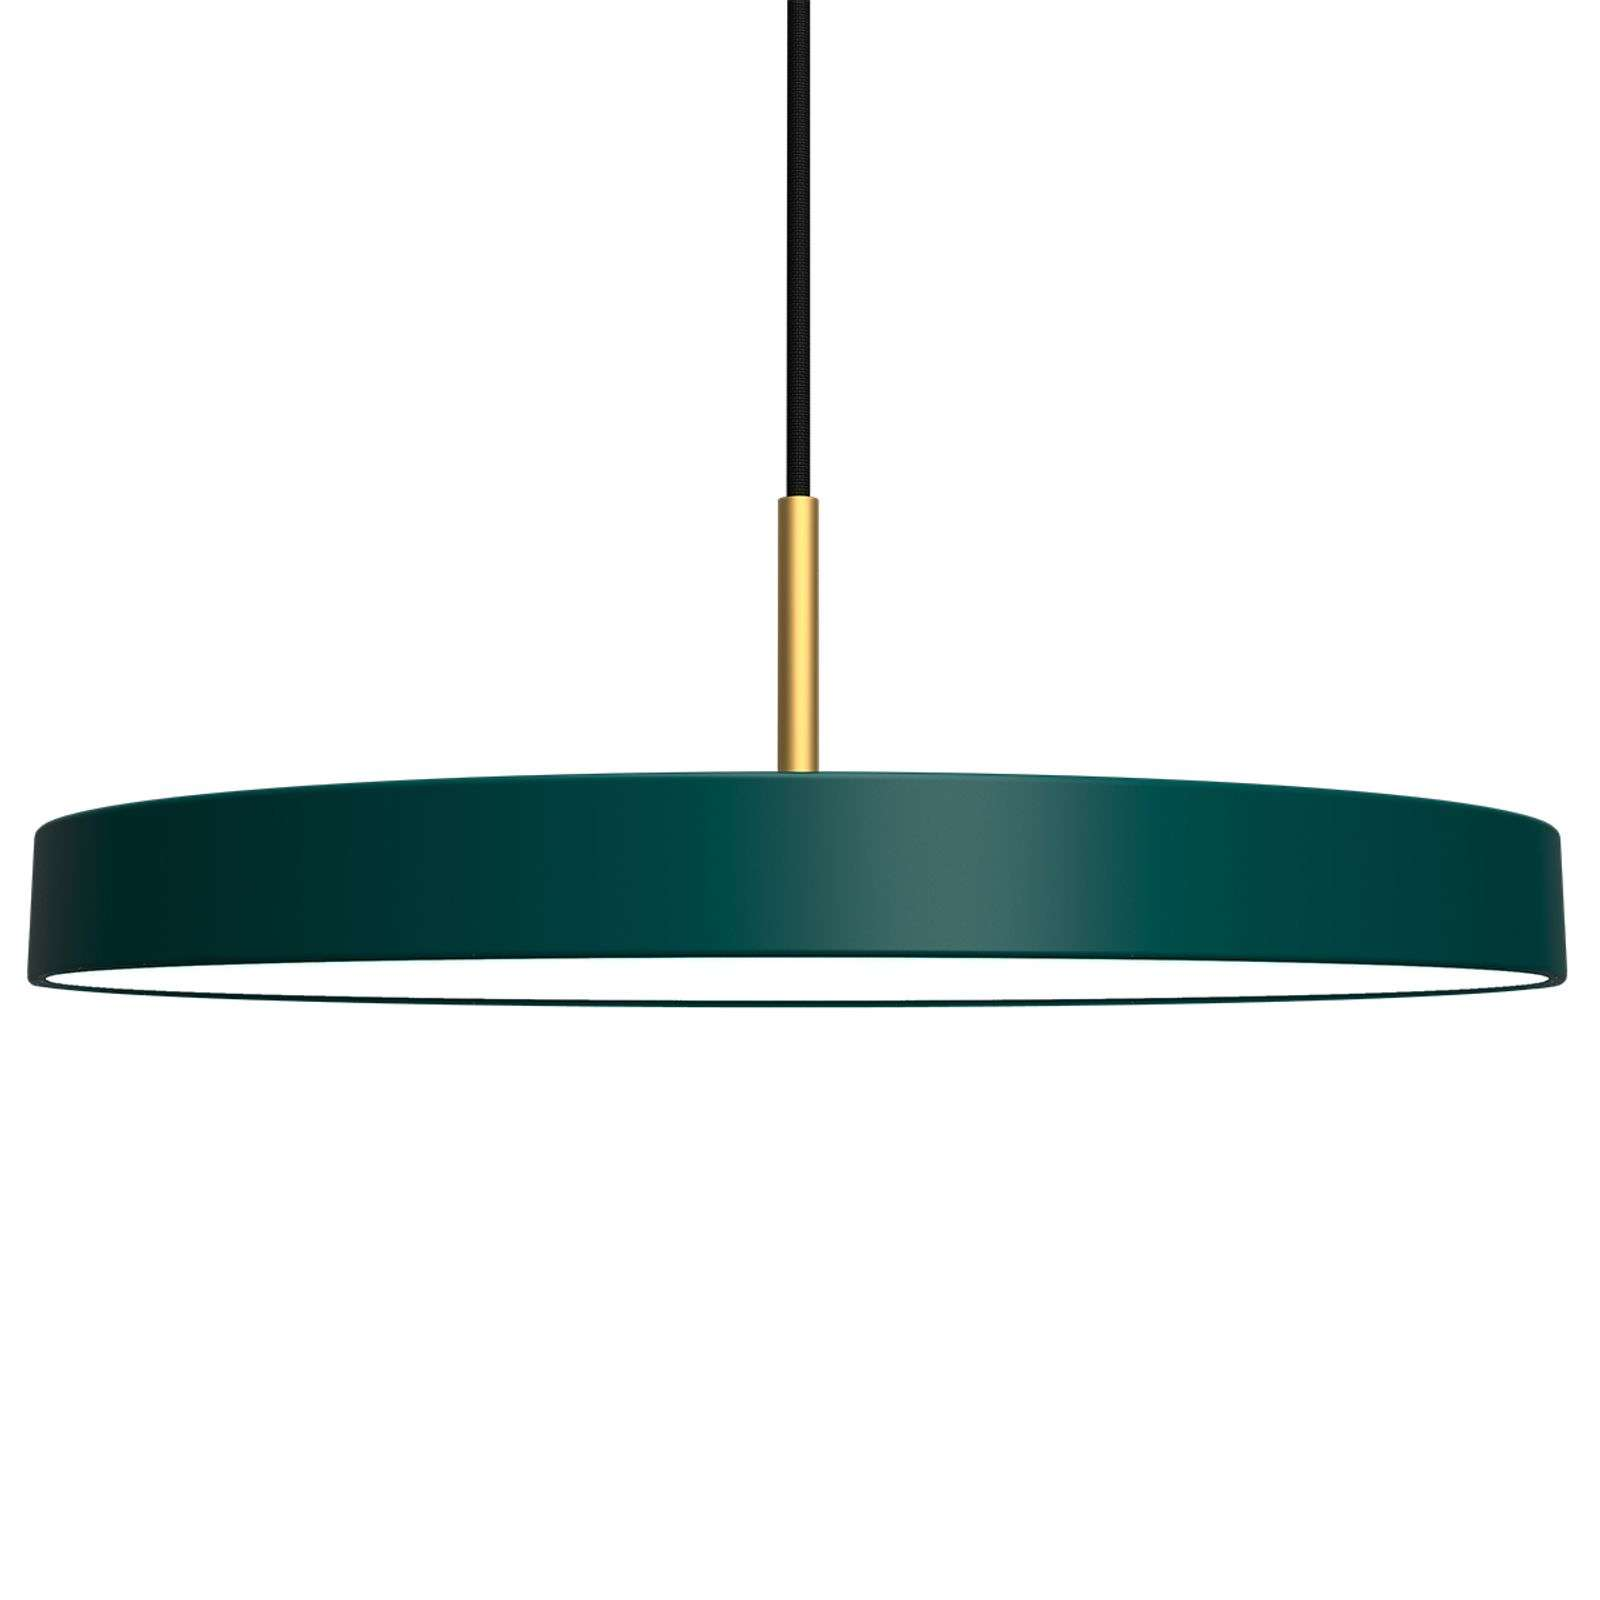 Suspension LED futuriste Asteria verte